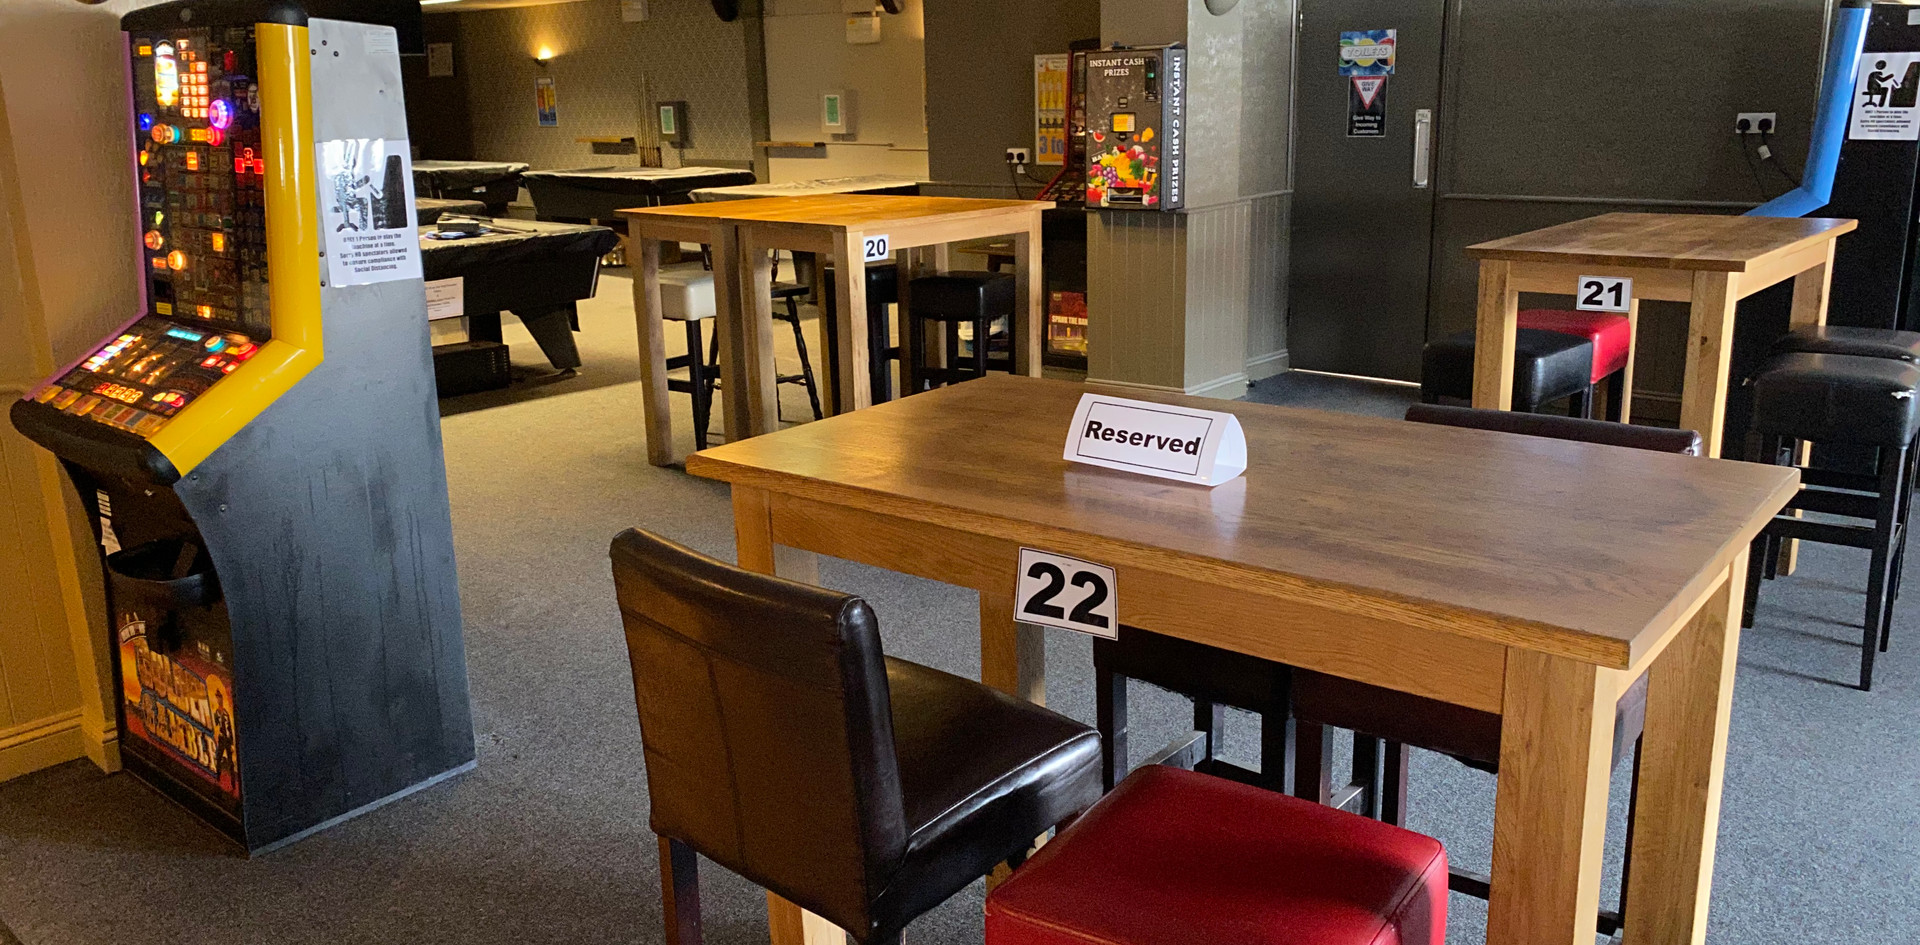 Lounge tables 20, 21 & 22